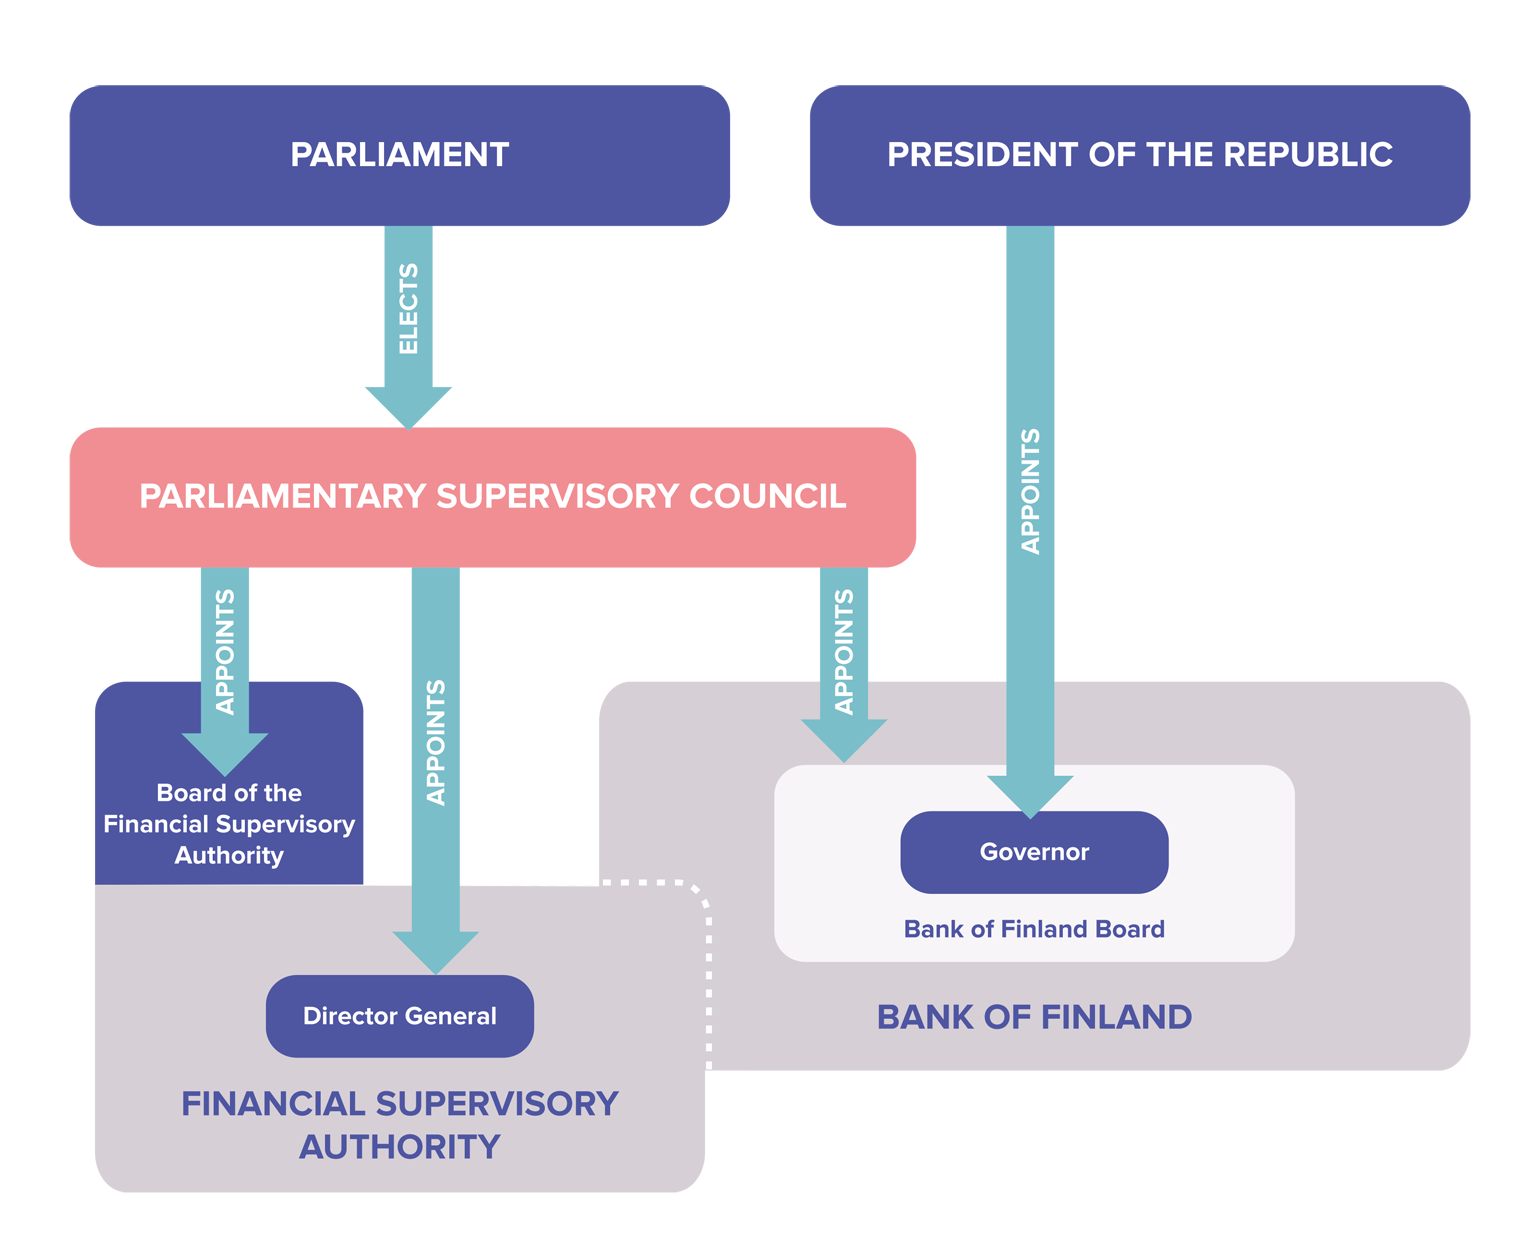 Bank of Finland's status